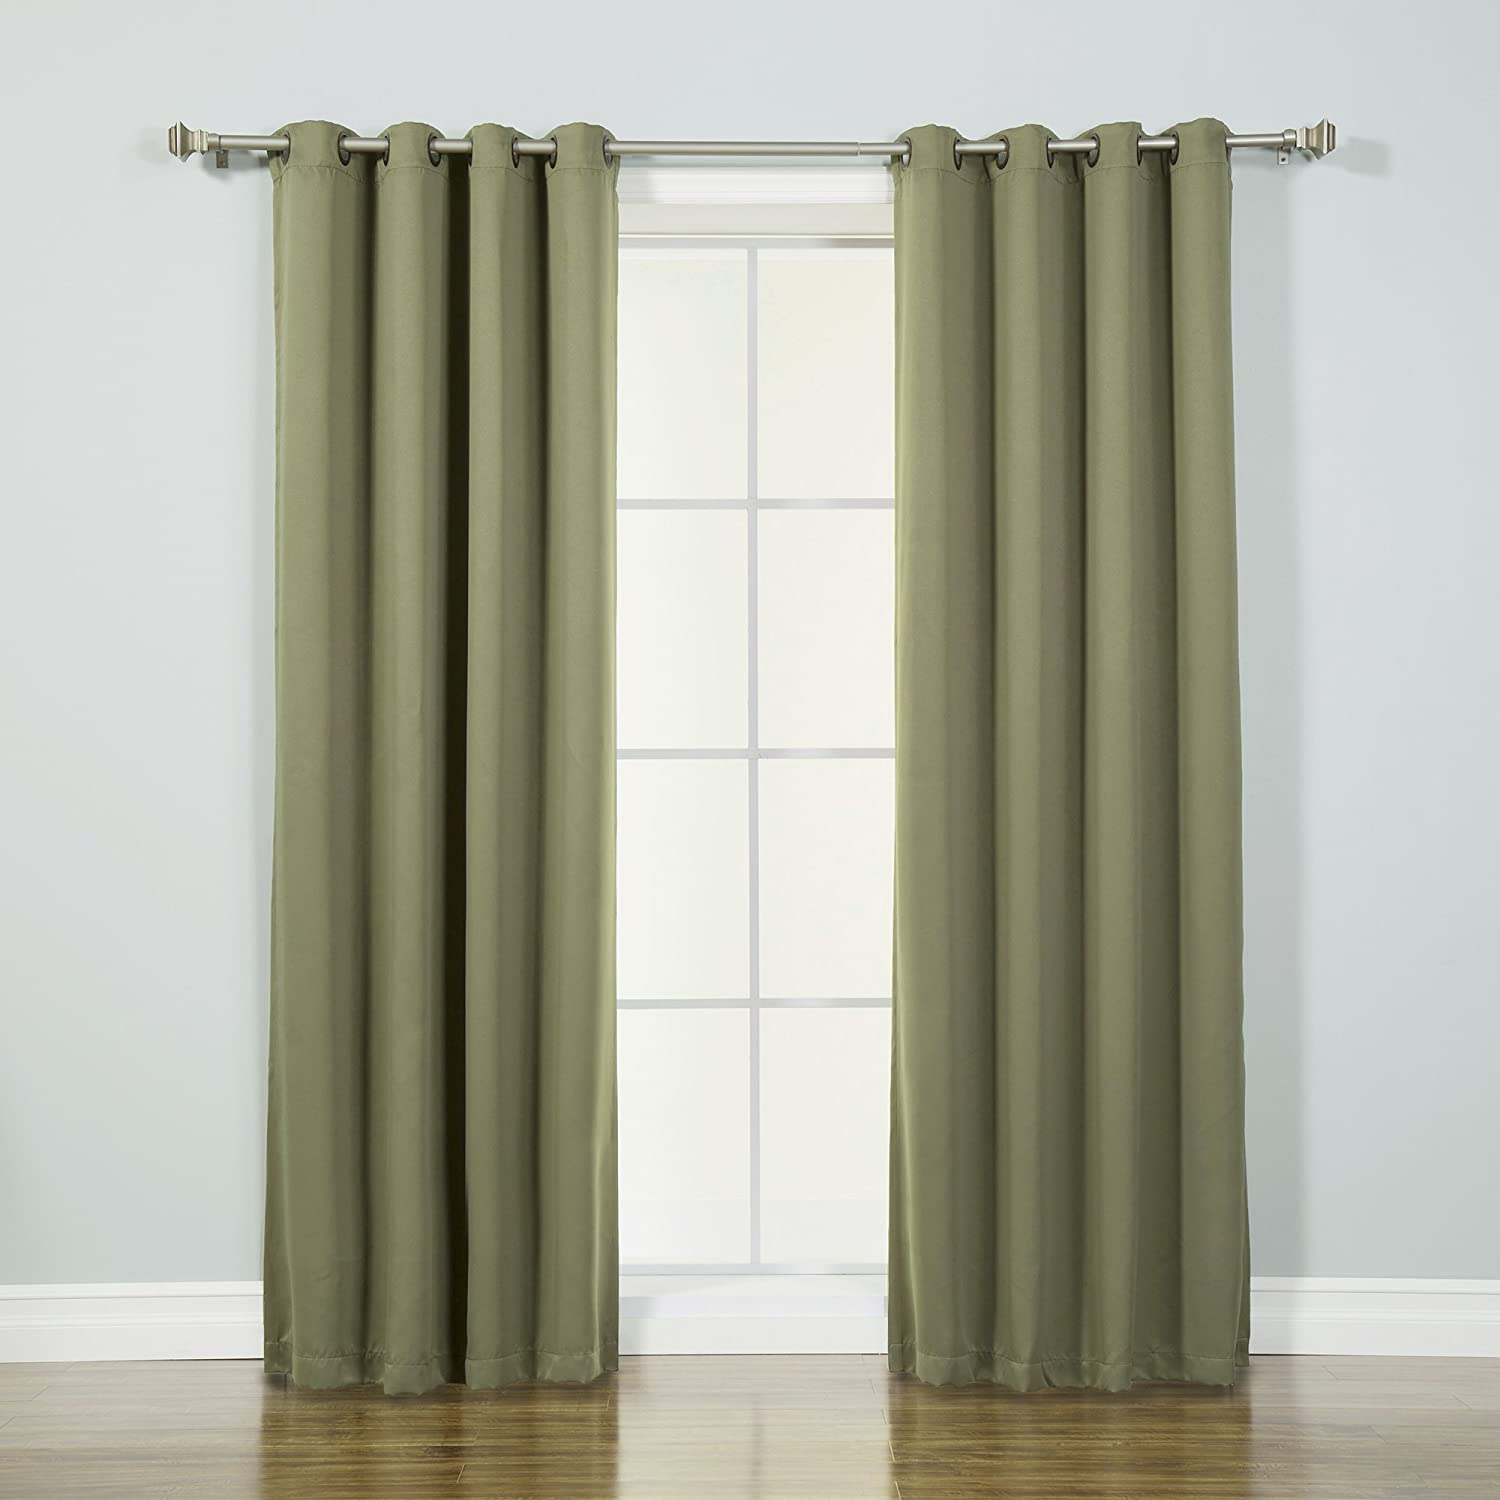 "Best Home Fashion Thermal Insulated Blackout Curtains - Antique Bronze Grommet Top - Olive - 52""W x 72""L - (Set of 2 Panels)"